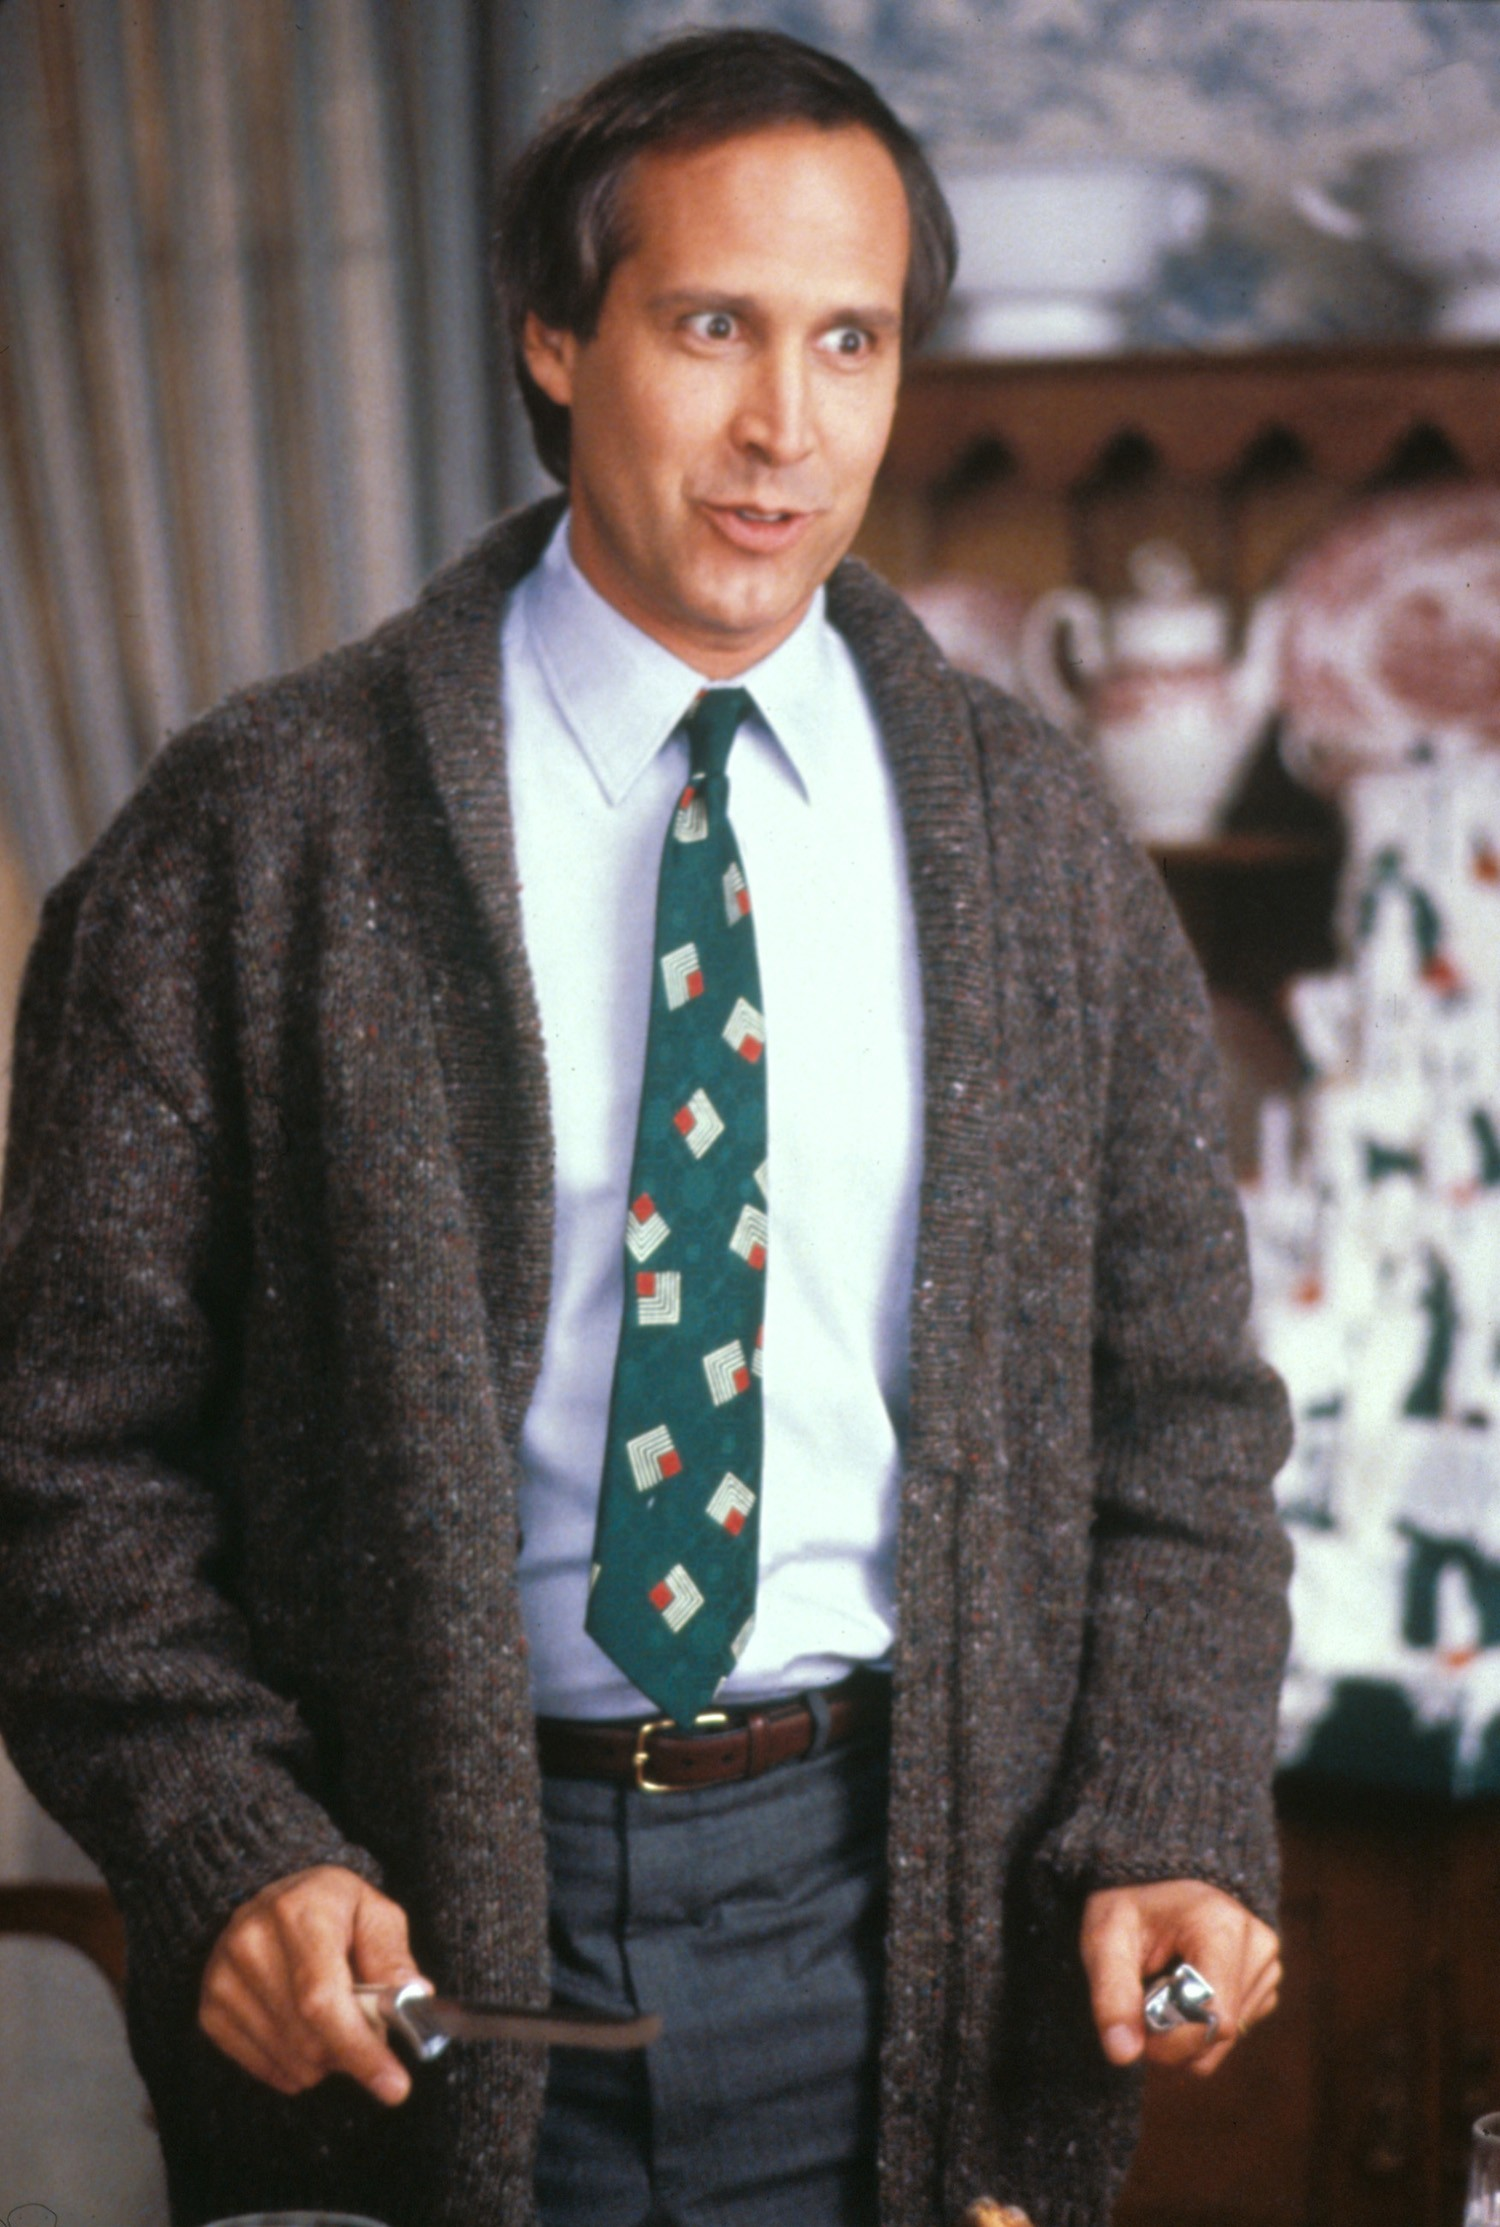 HD Wallpaper and background photos of National Lampoon's Christmas Vacation  for fans of National Lampoons ChristmasVacation images.